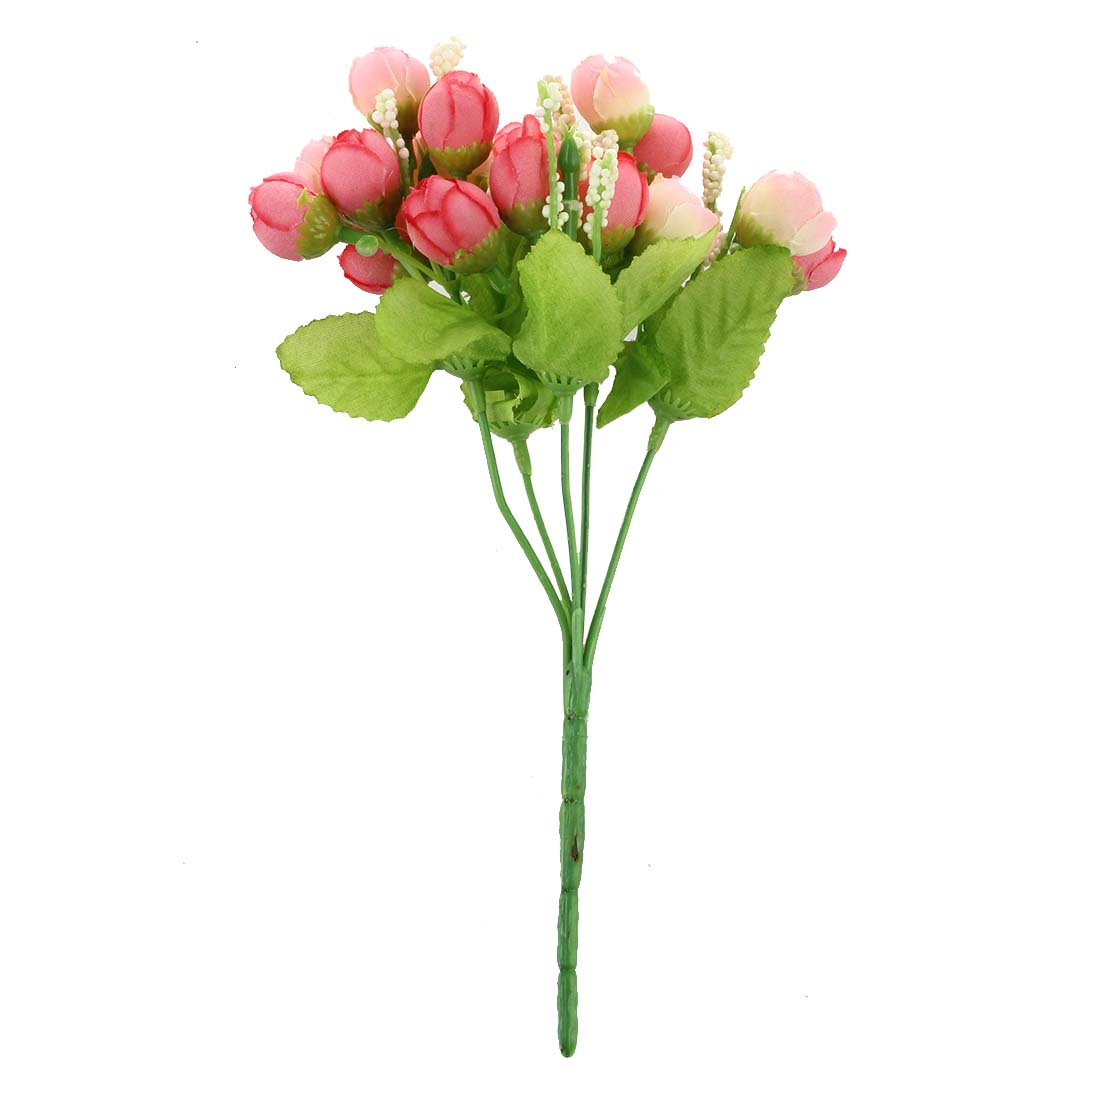 Popular artificial flowers rosie buy cheap artificial flowers rosie artificial flowers rosie izmirmasajfo Choice Image